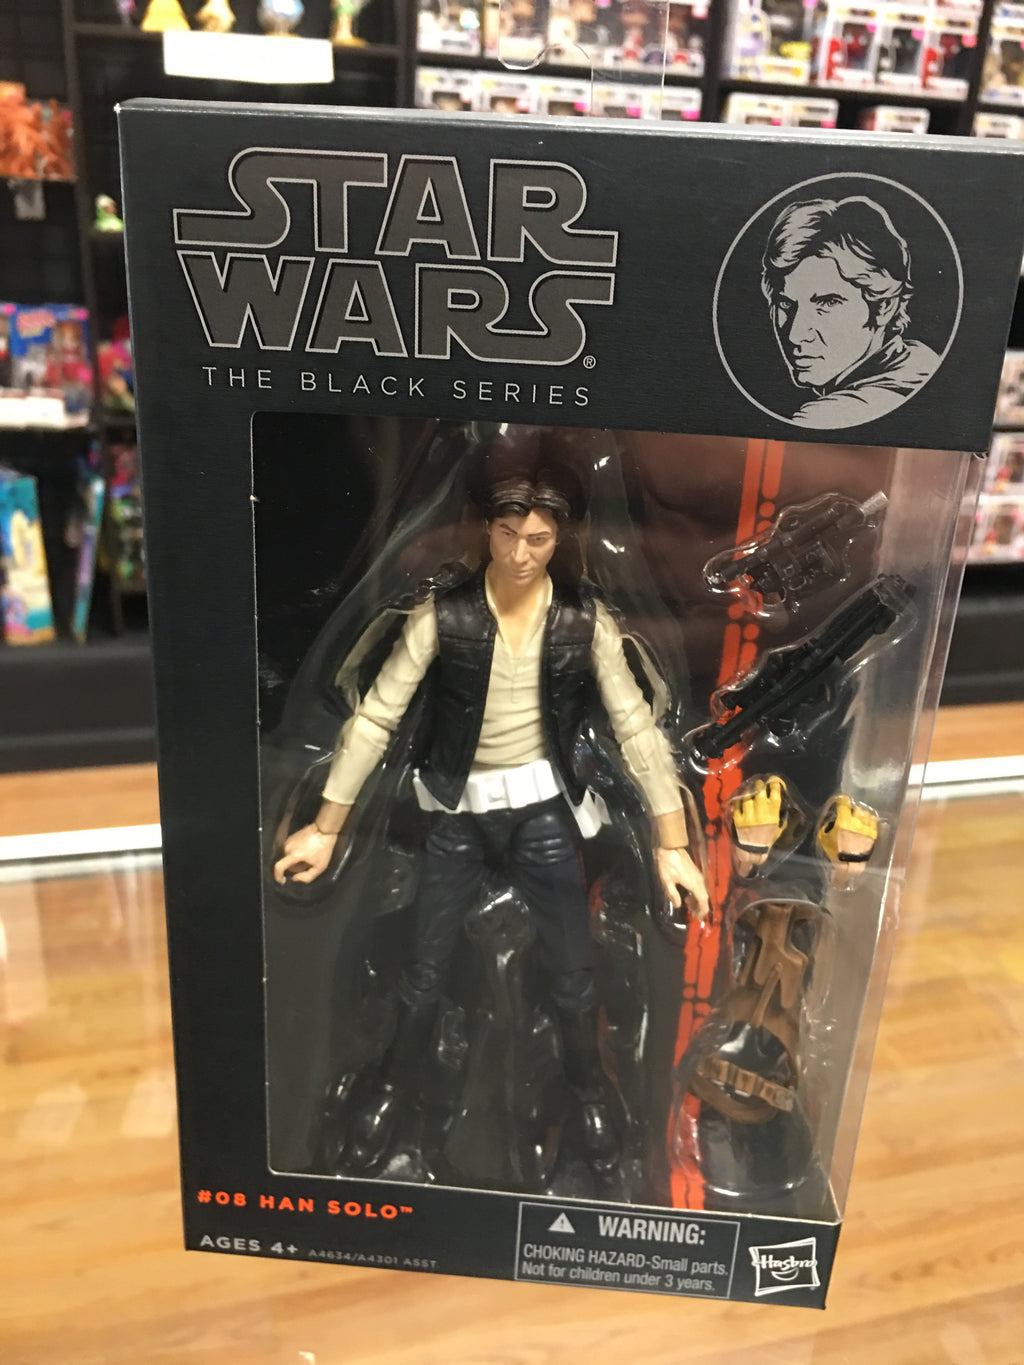 Star Wars Black Series Han Solo 08 Hasbro